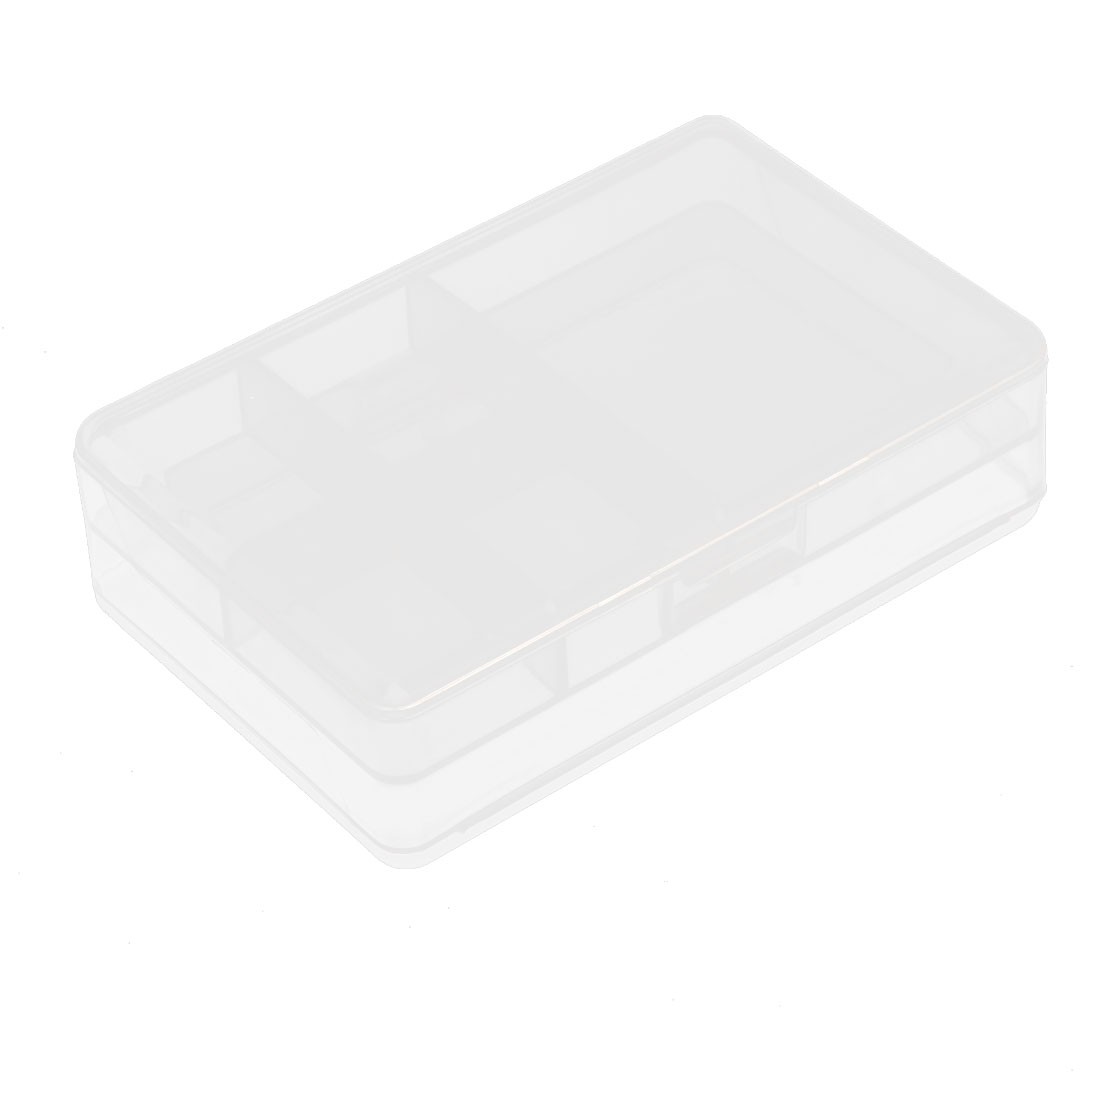 10.3cm x 6.5cm White Plastic 6 Components Storage Enclosure Case Box